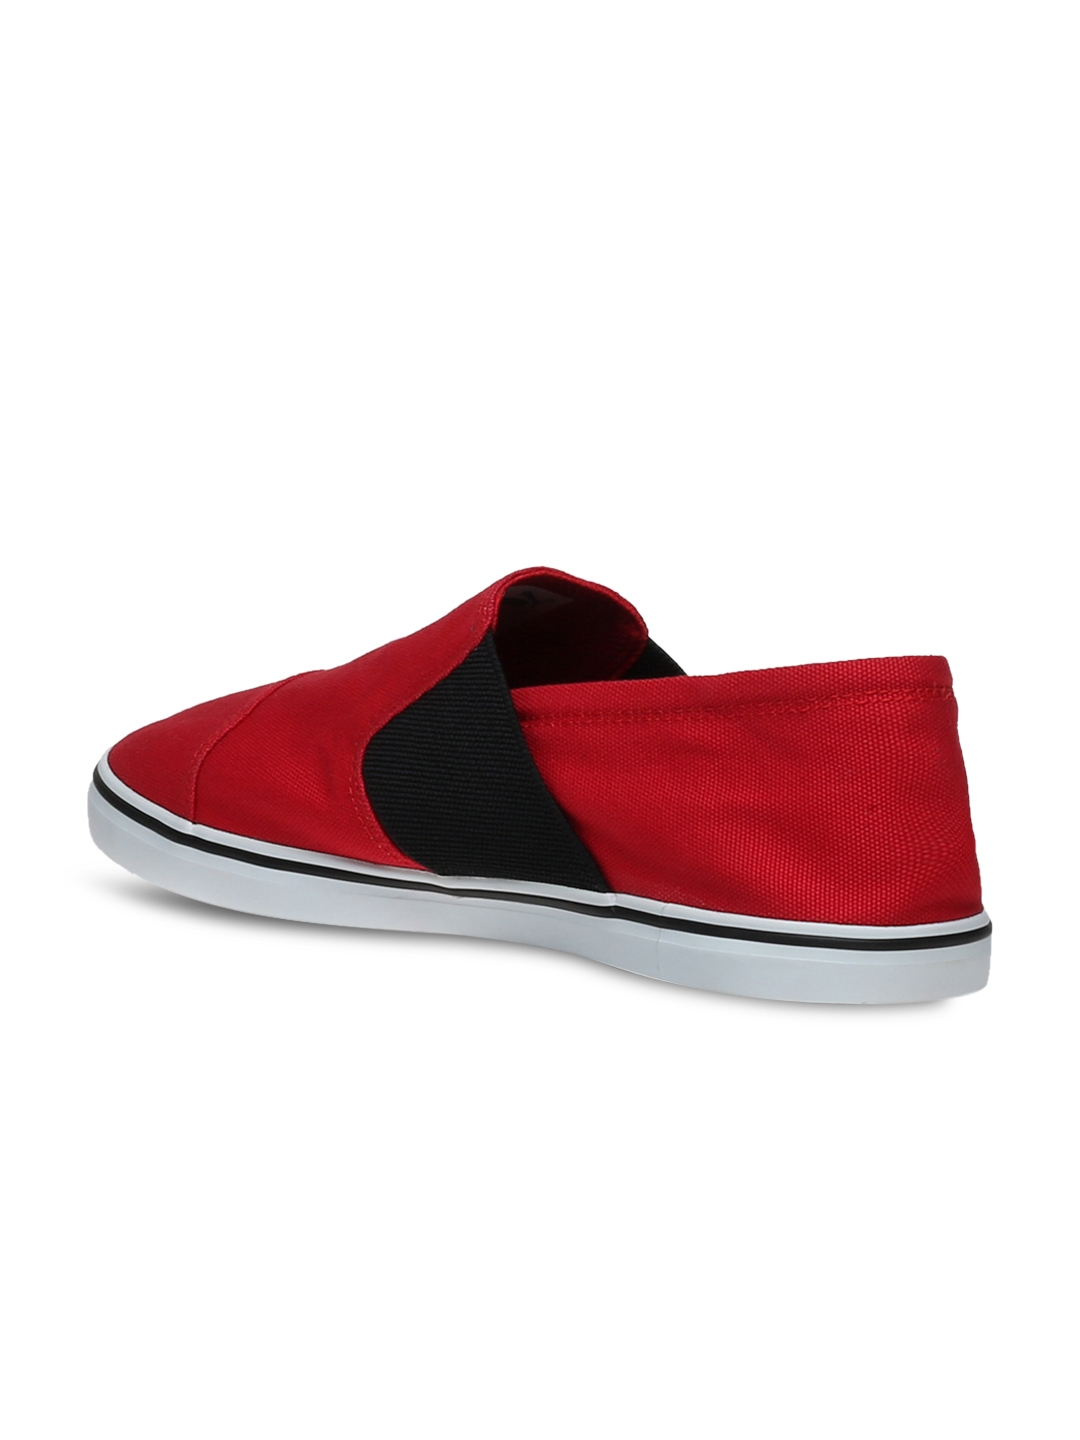 eaf2d0ce5fba0f Buy PUMA Men Red Elsu V2 Slip On IDP Sneakers - Casual Shoes for Men ...